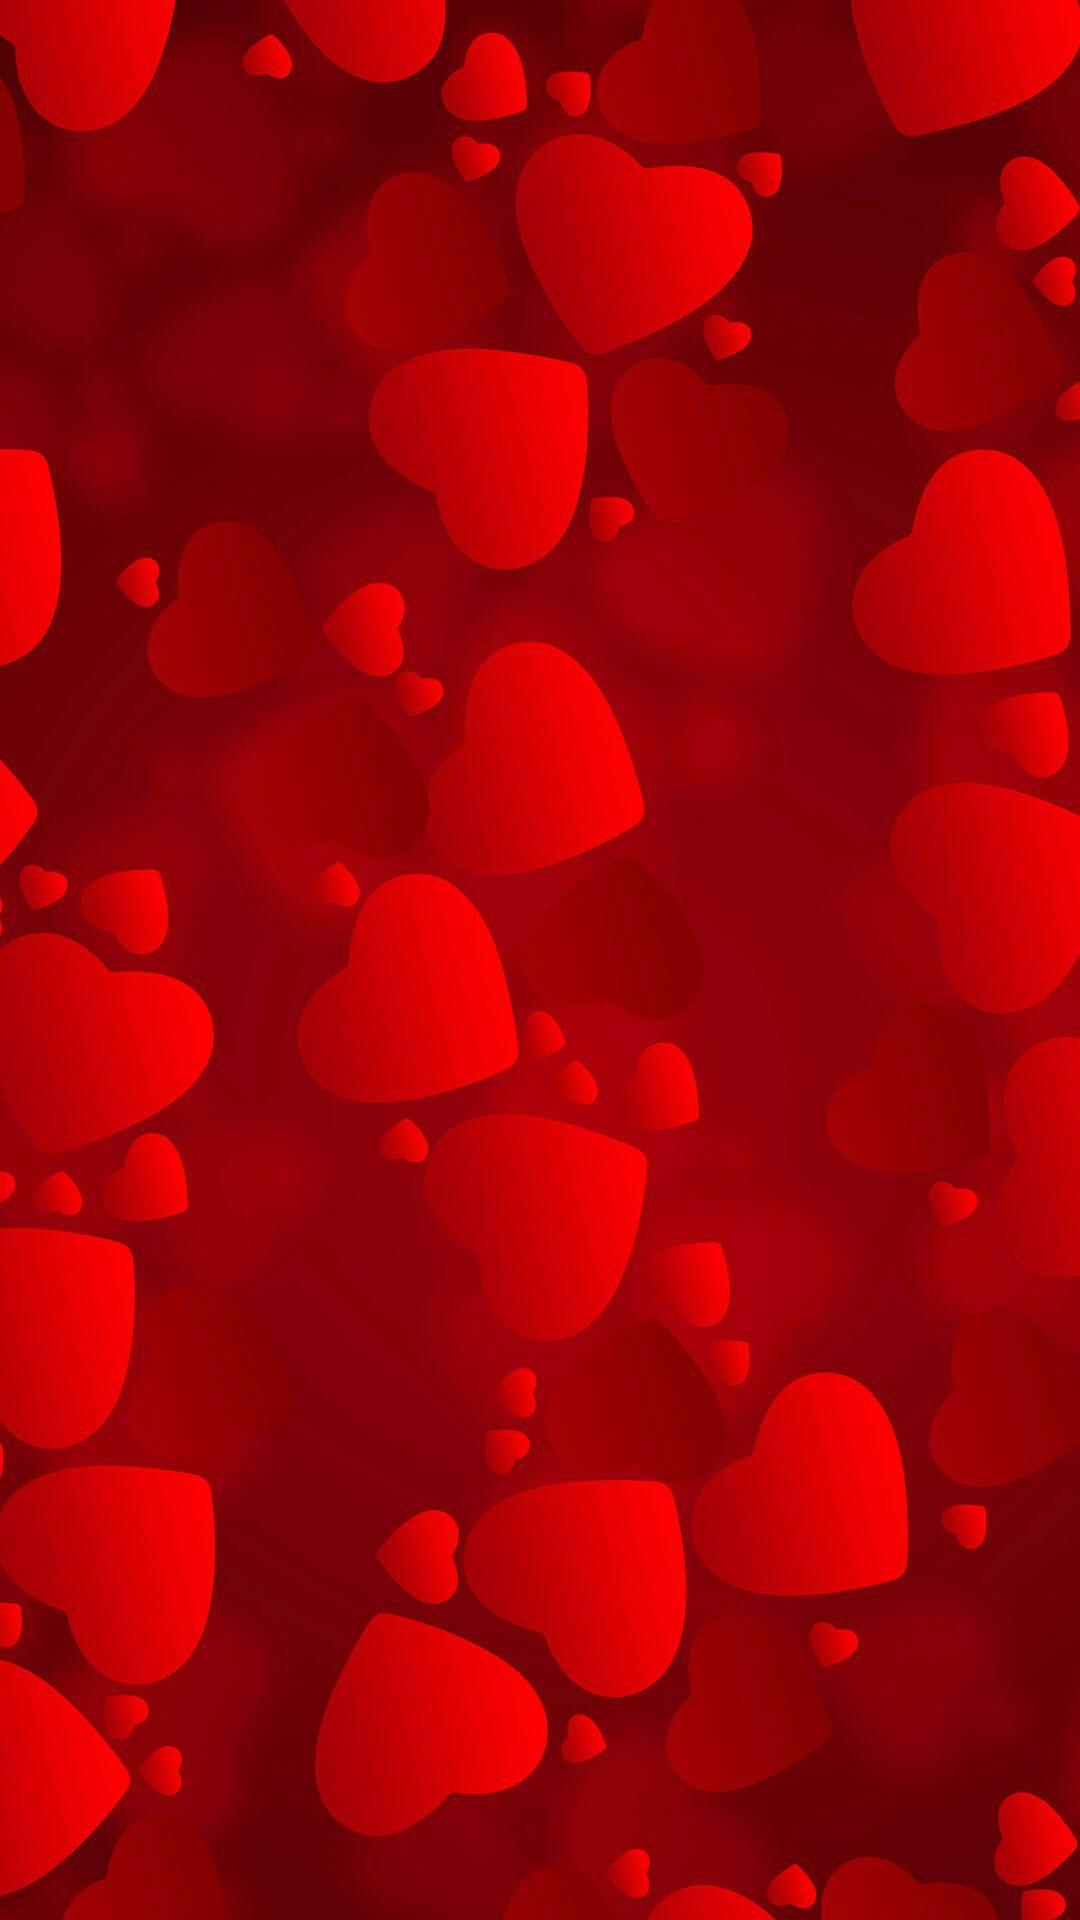 Love Hd Android Wallpapers Wallpaper Cave